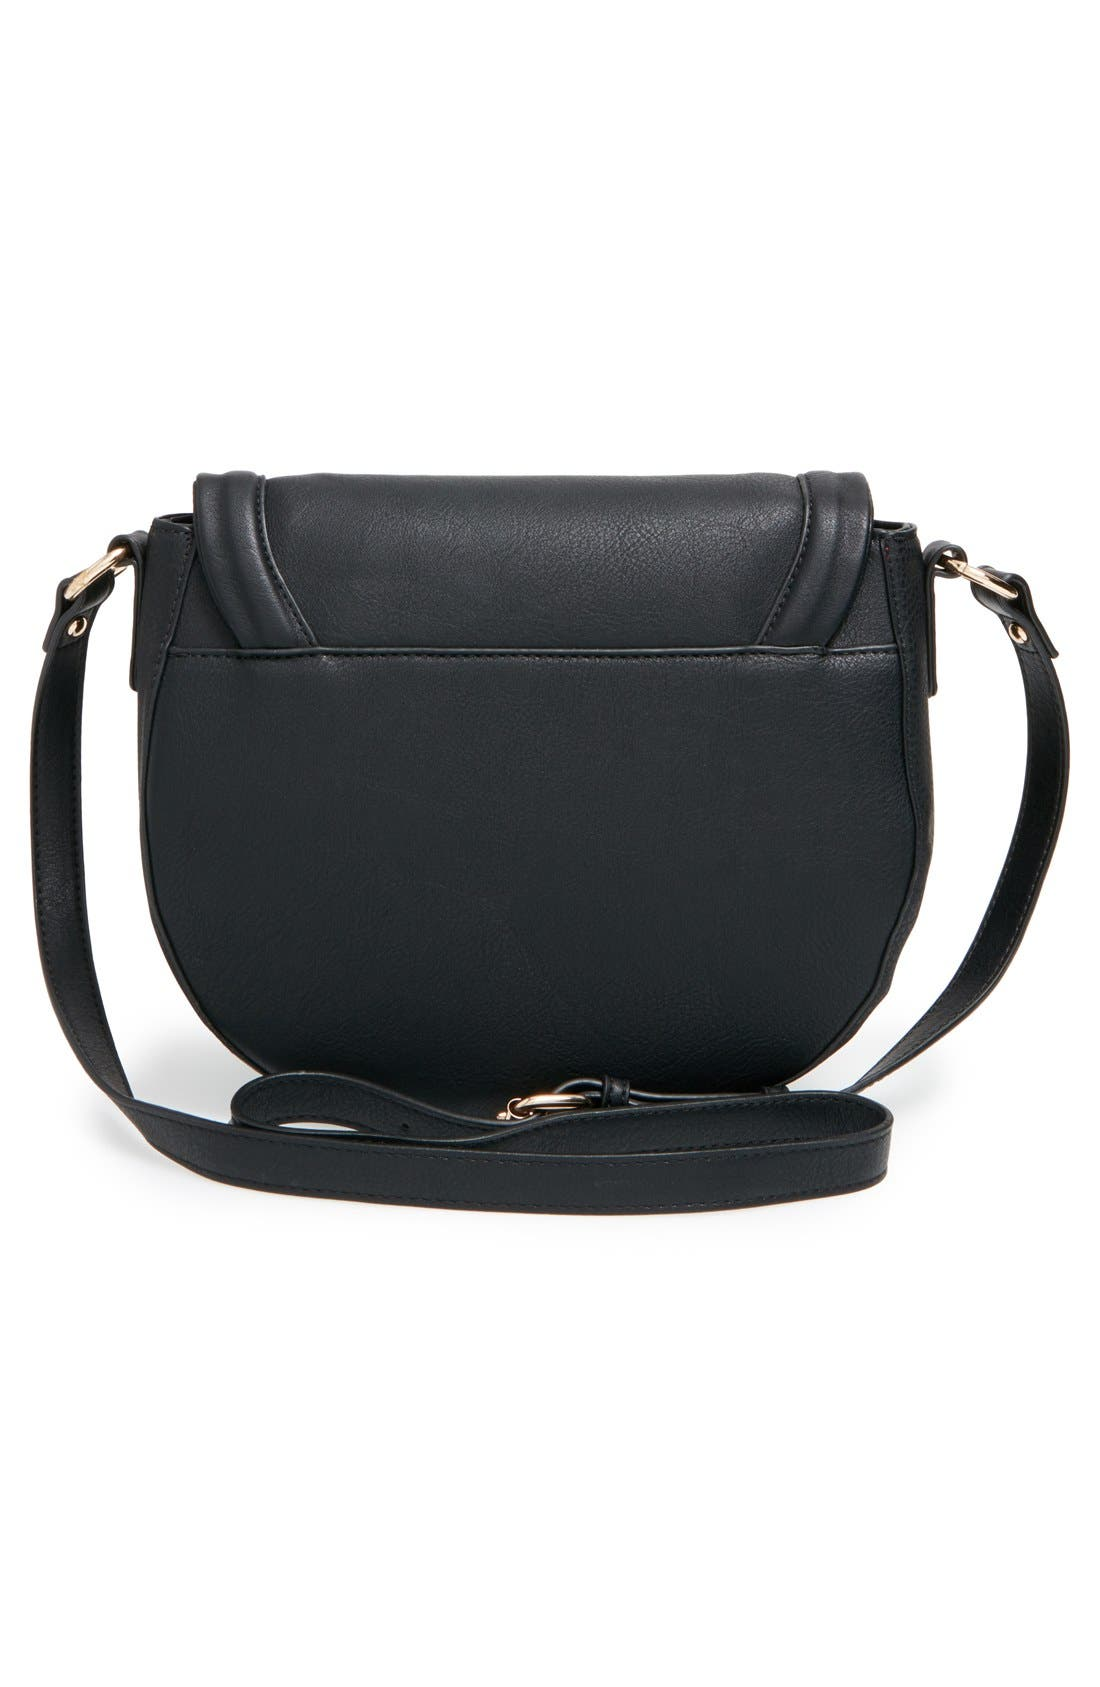 'Thalia' Crossbody Bag,                             Alternate thumbnail 6, color,                             001